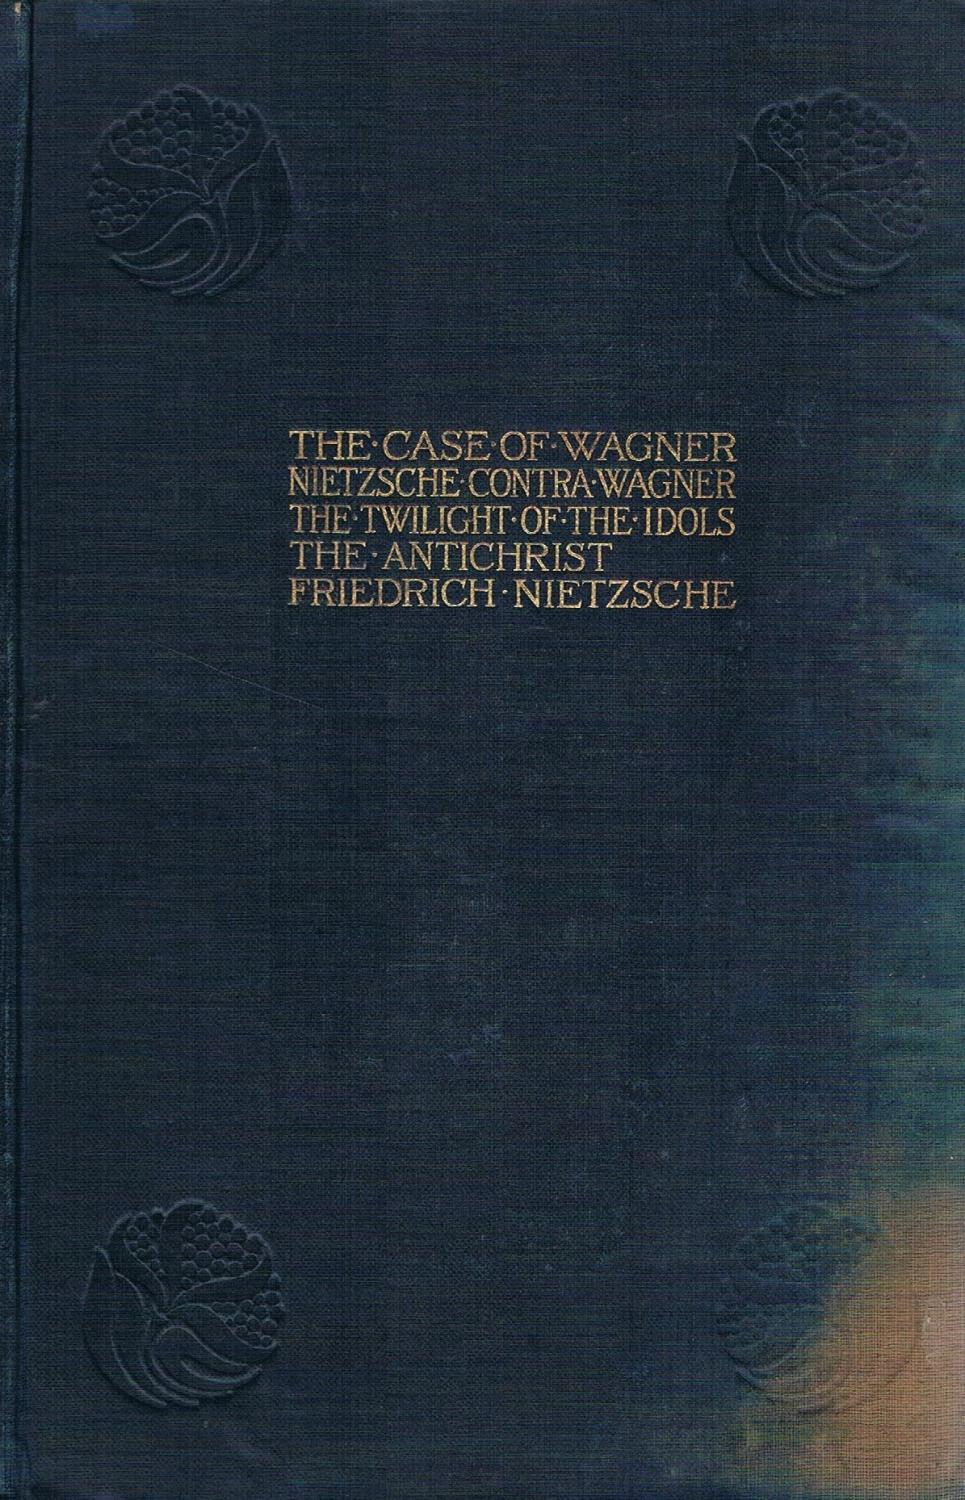 The Case of Wagner. Nietzsche Contra Wagner. The Twilight of the Idols. The Antichrist Nietzsche, Friedrich Good Hardcover Some marks and wear of cloth on both covers. Please contact me if you require further information, scans e.t.c.